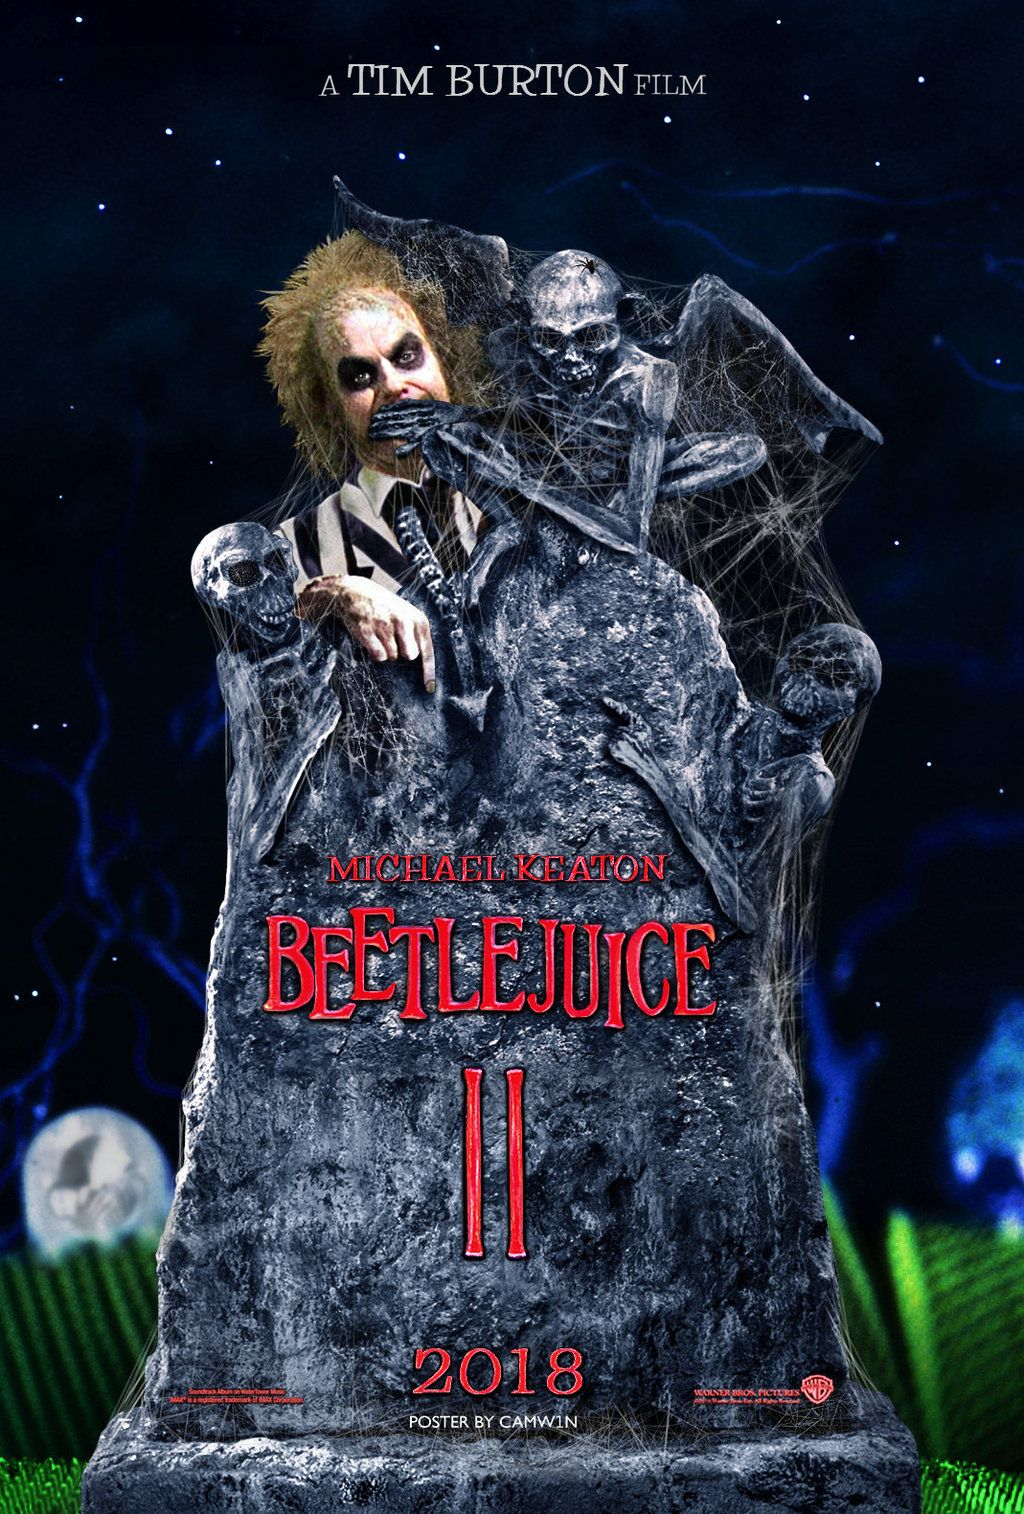 tengo hambre Subrayar Pakistán  Can't remember I've seen rumors that it is true and that it isn't. Burton  said he would have to have some of the…   Beetlejuice movie, Beetlejuice, Tim  burton films